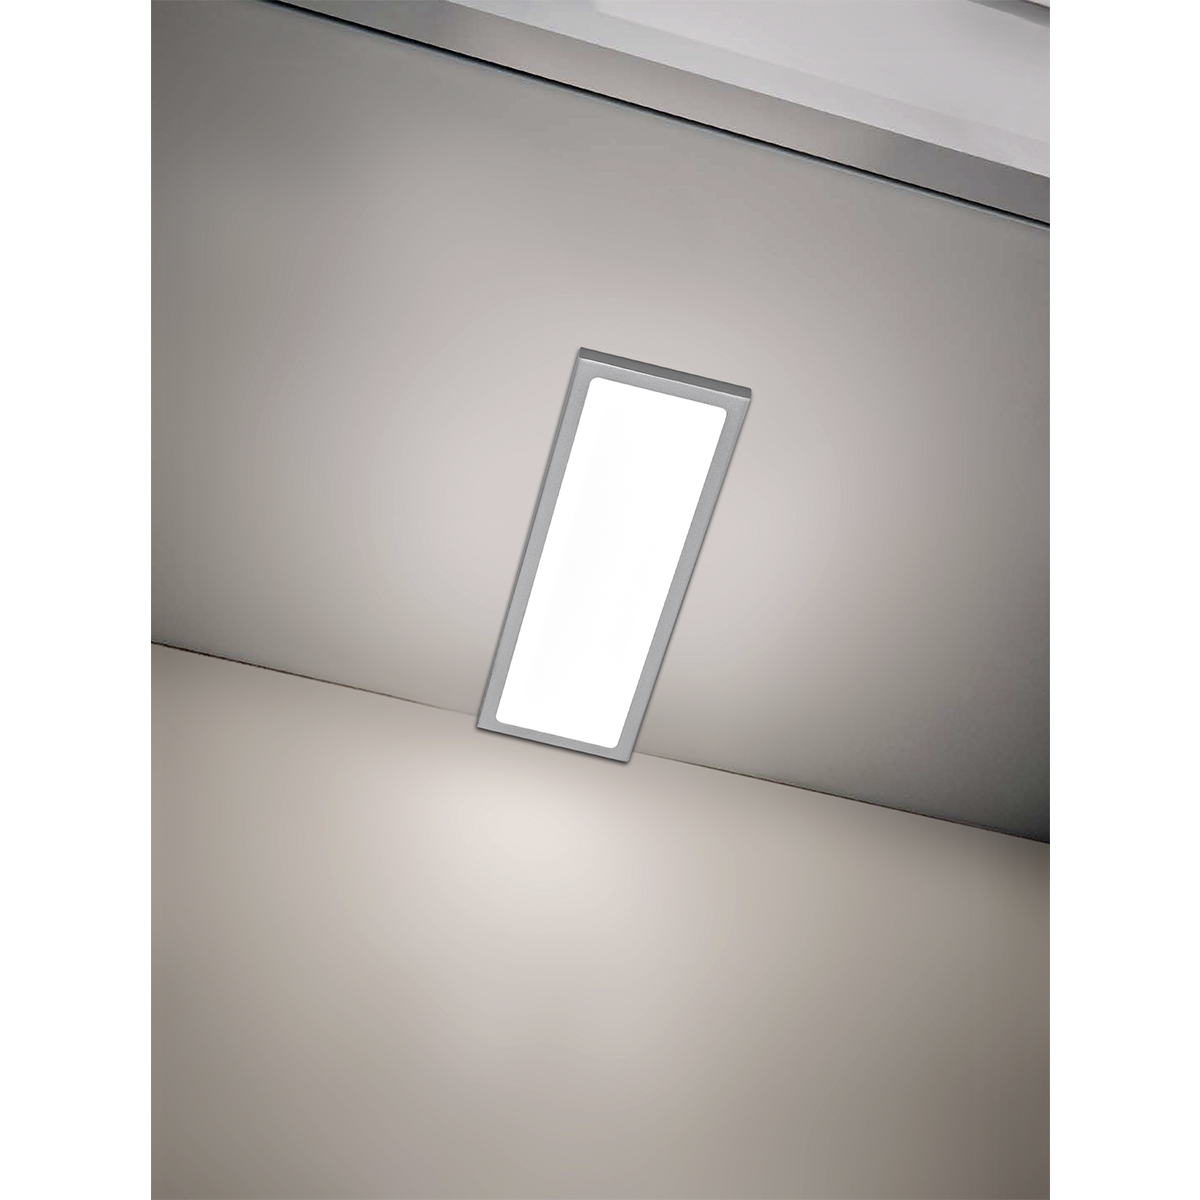 12V Rectangular Ultra Thin LED Under Cabinet Light 2816